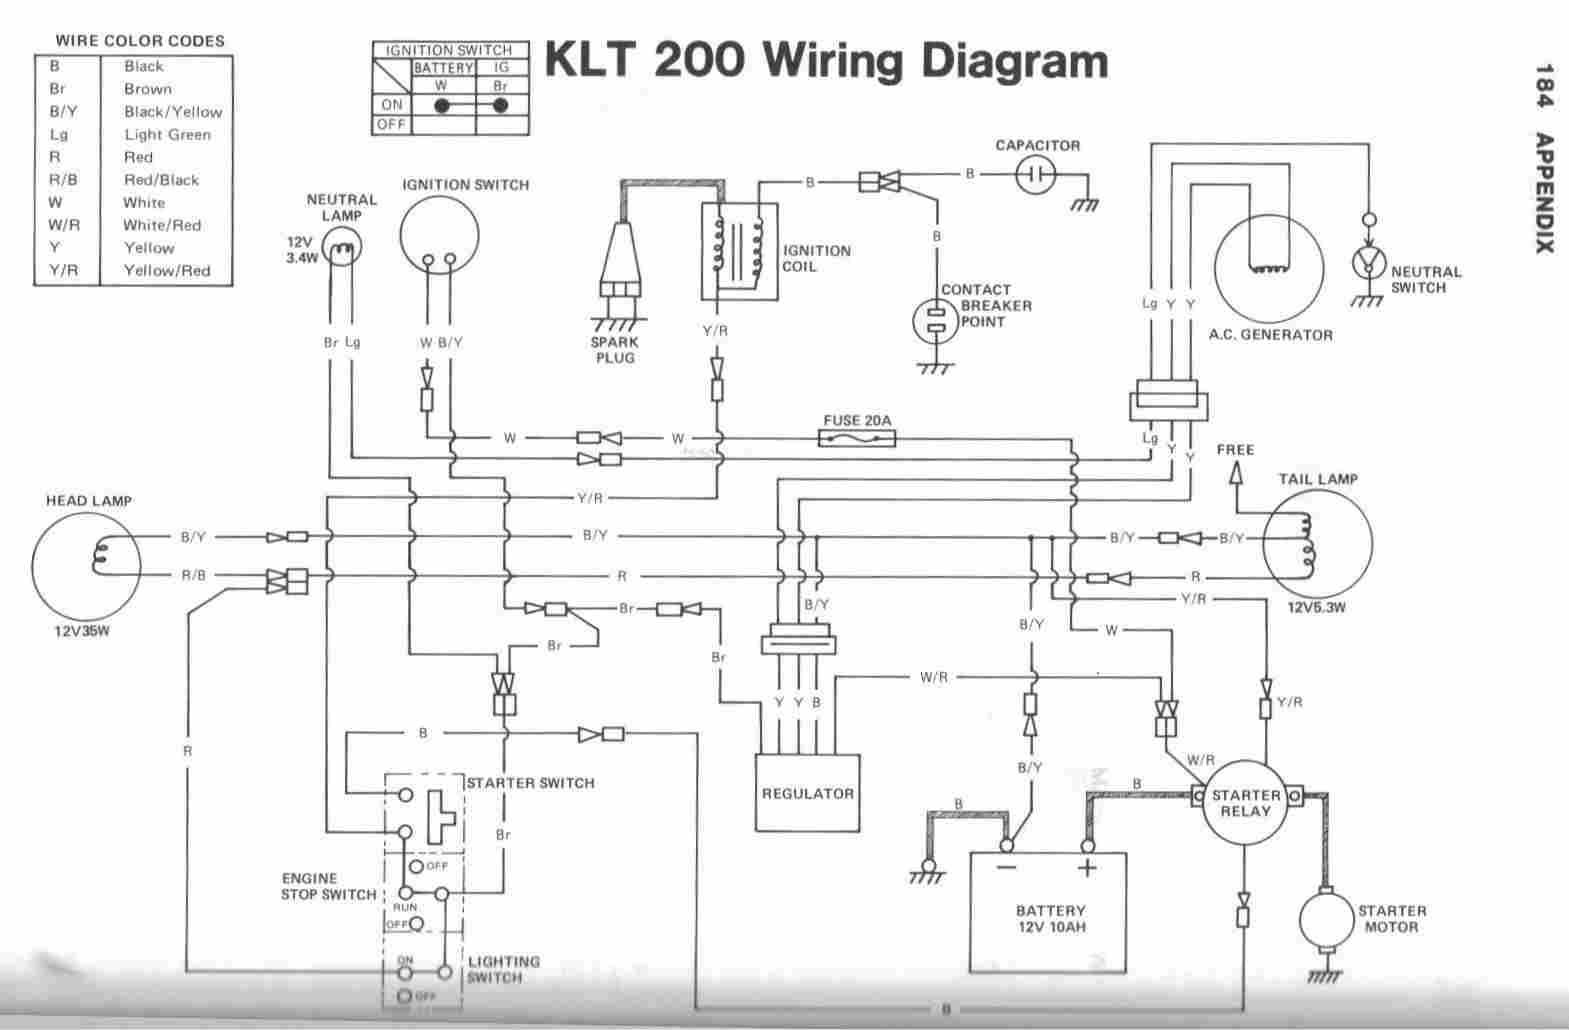 2869034594ce054a636782e5c44b61b4 wiring diagrams \u2022 woorishop co  at edmiracle.co